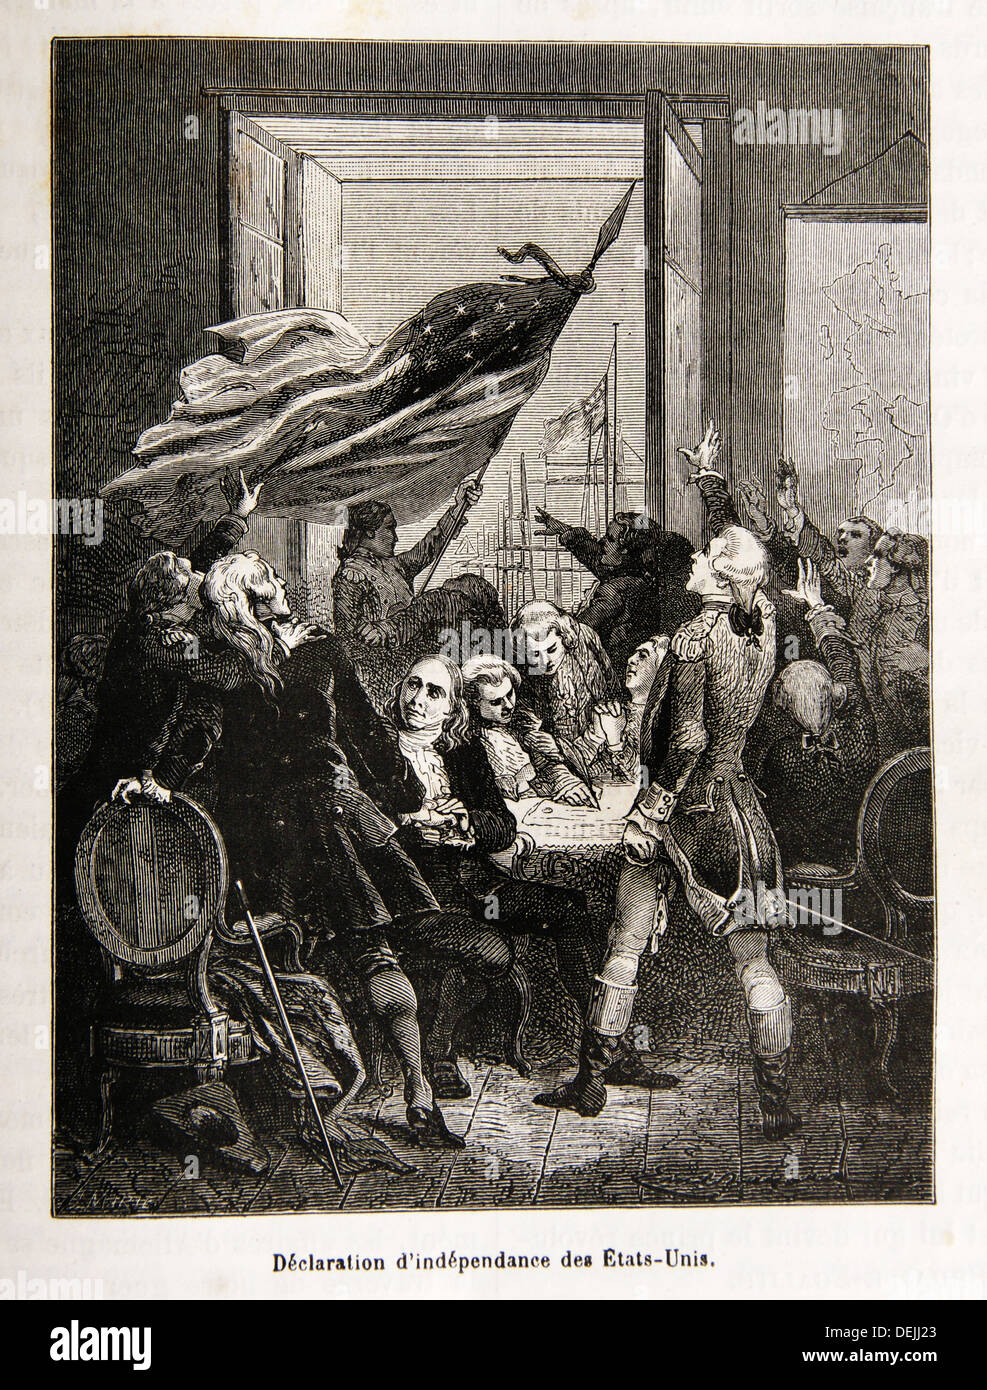 The United States Declaration of Independence is a statement adopted by the Continental Congress on July 4, 1776, which - Stock Image